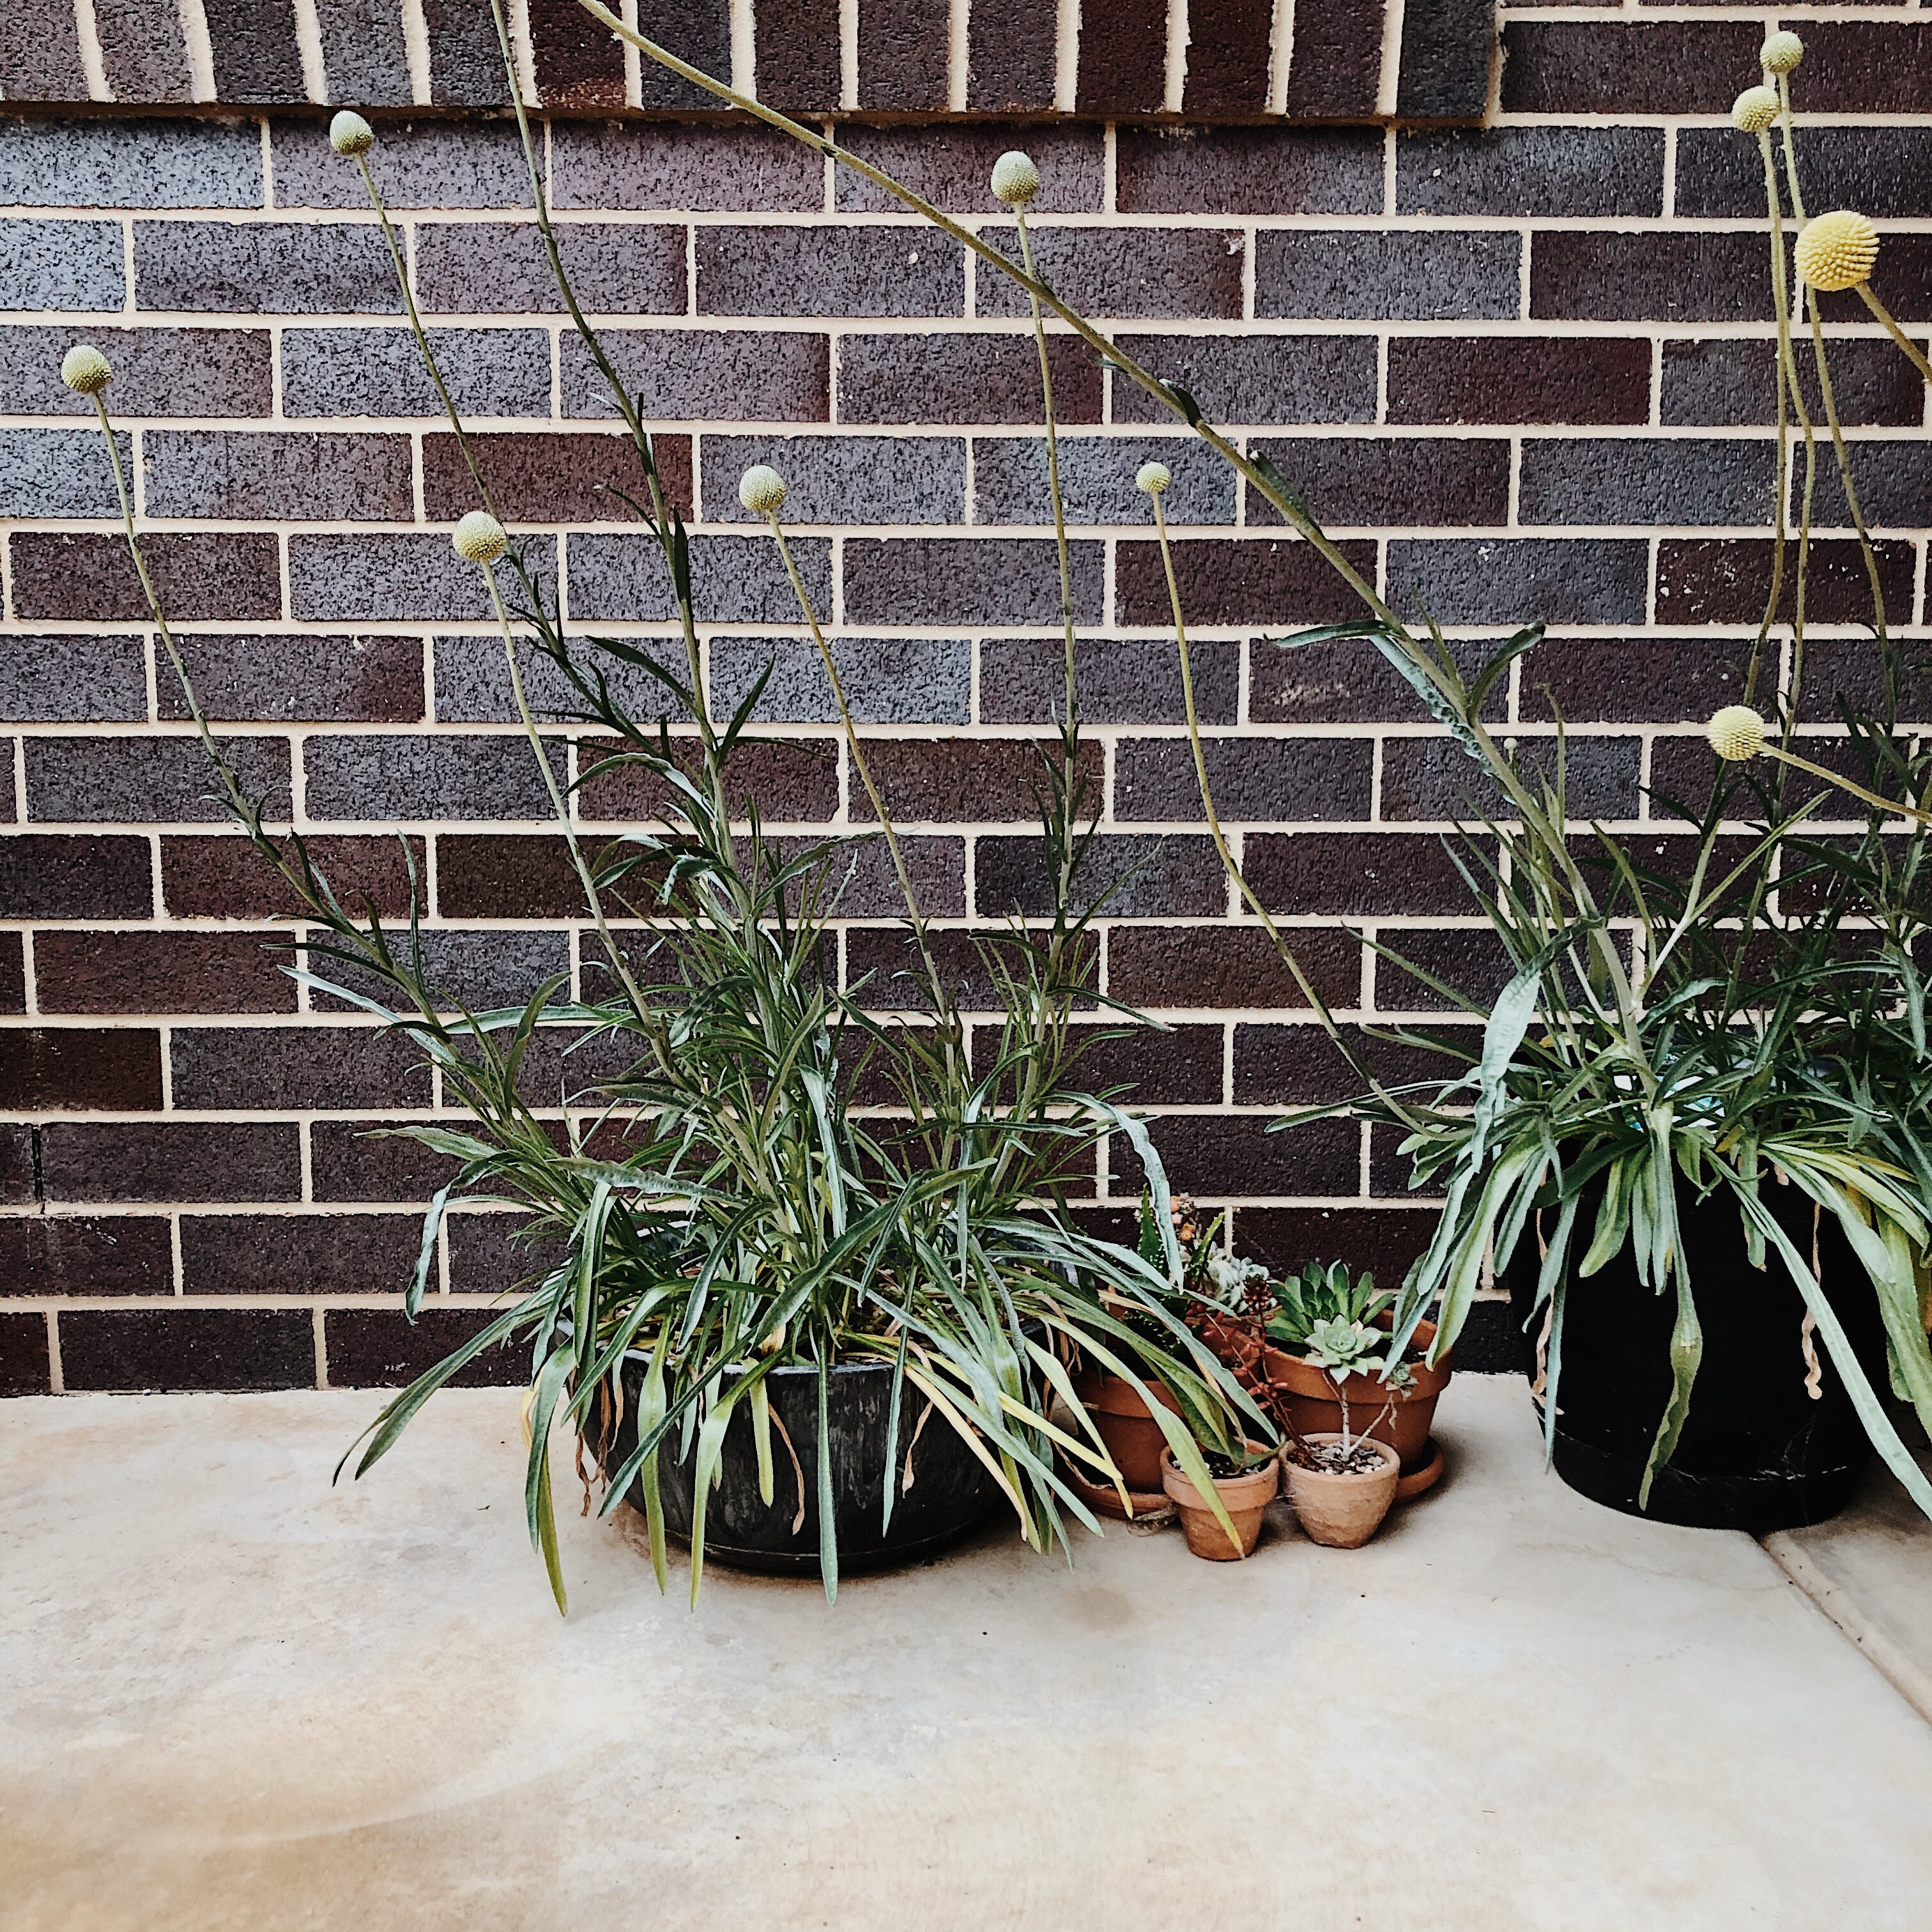 Billy button plants in pots against a dark brick wall.